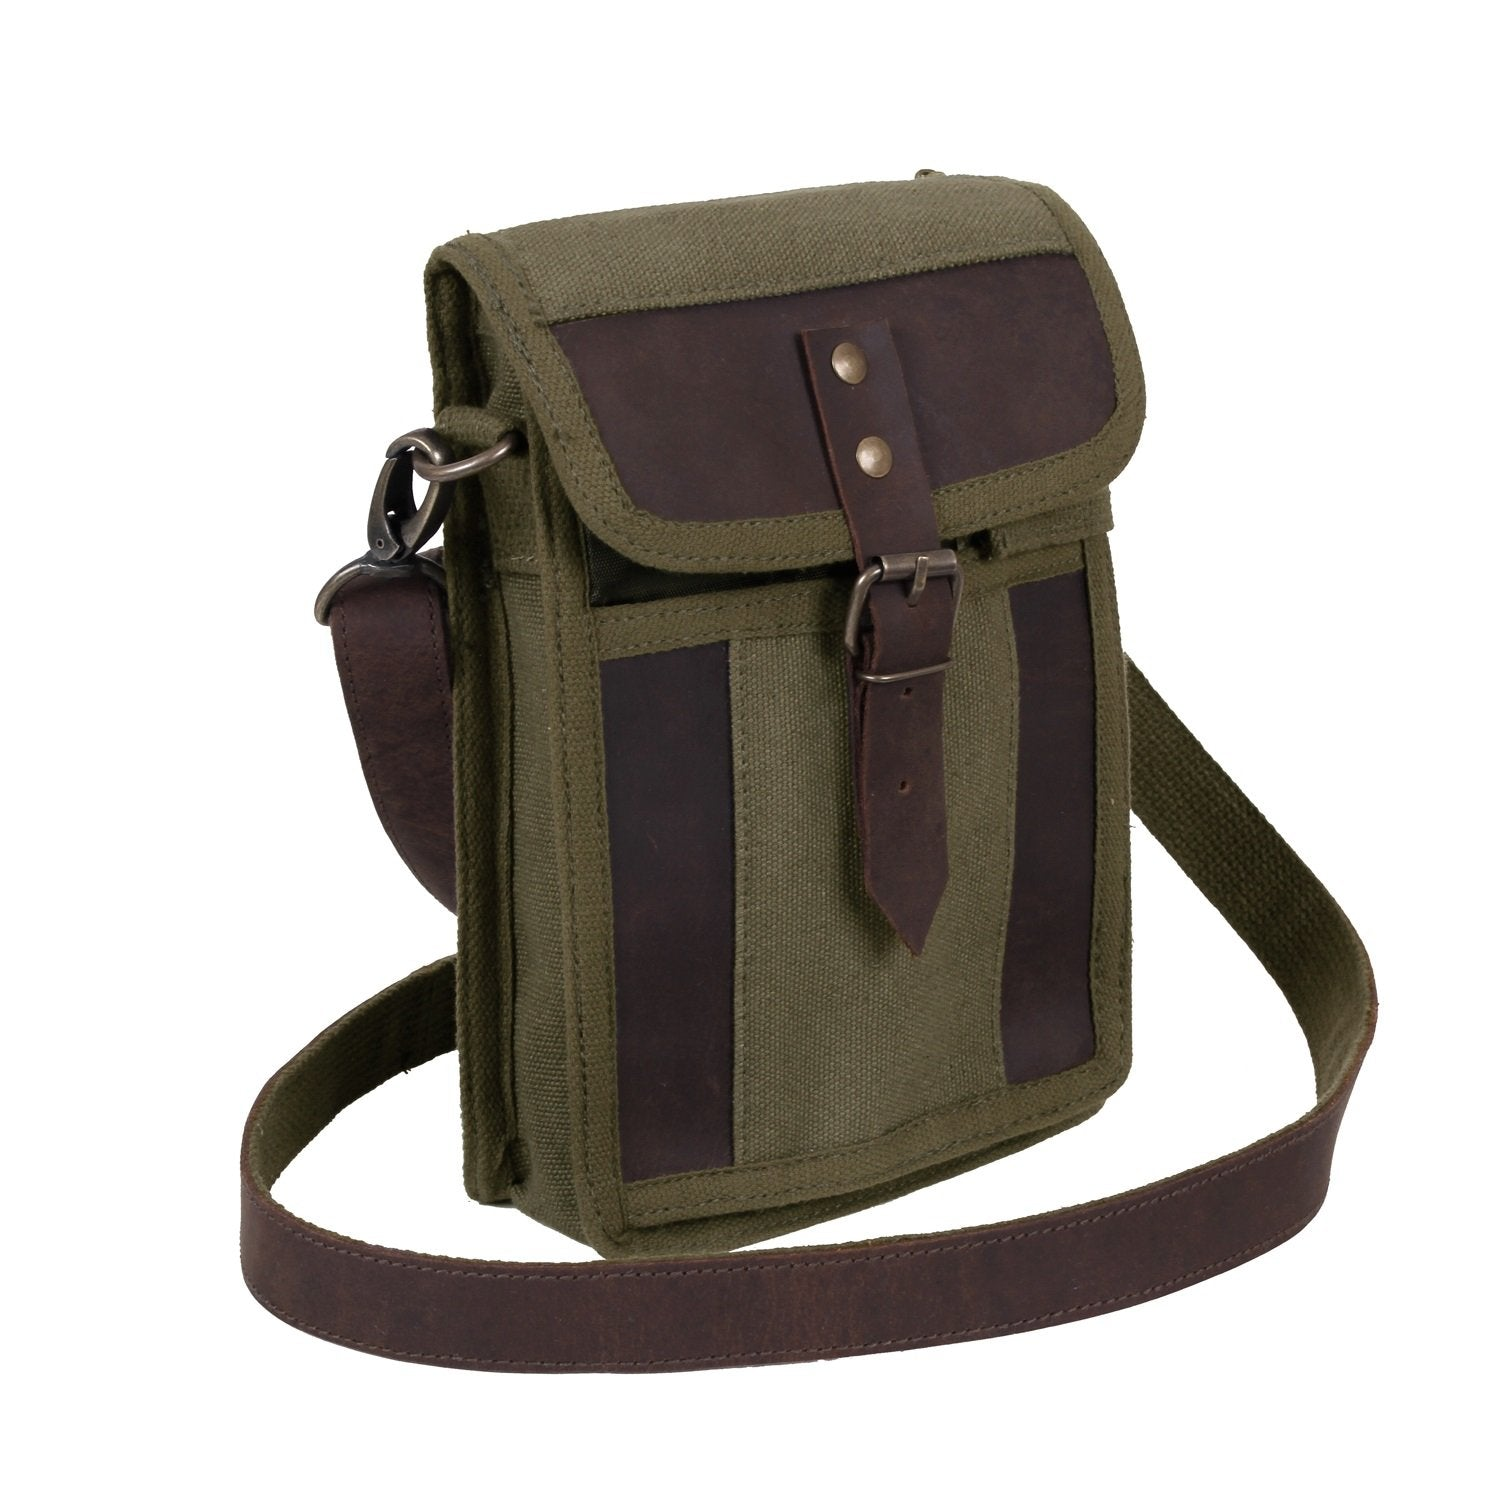 Canvas Travel Portfolio Bag With Leather Accents